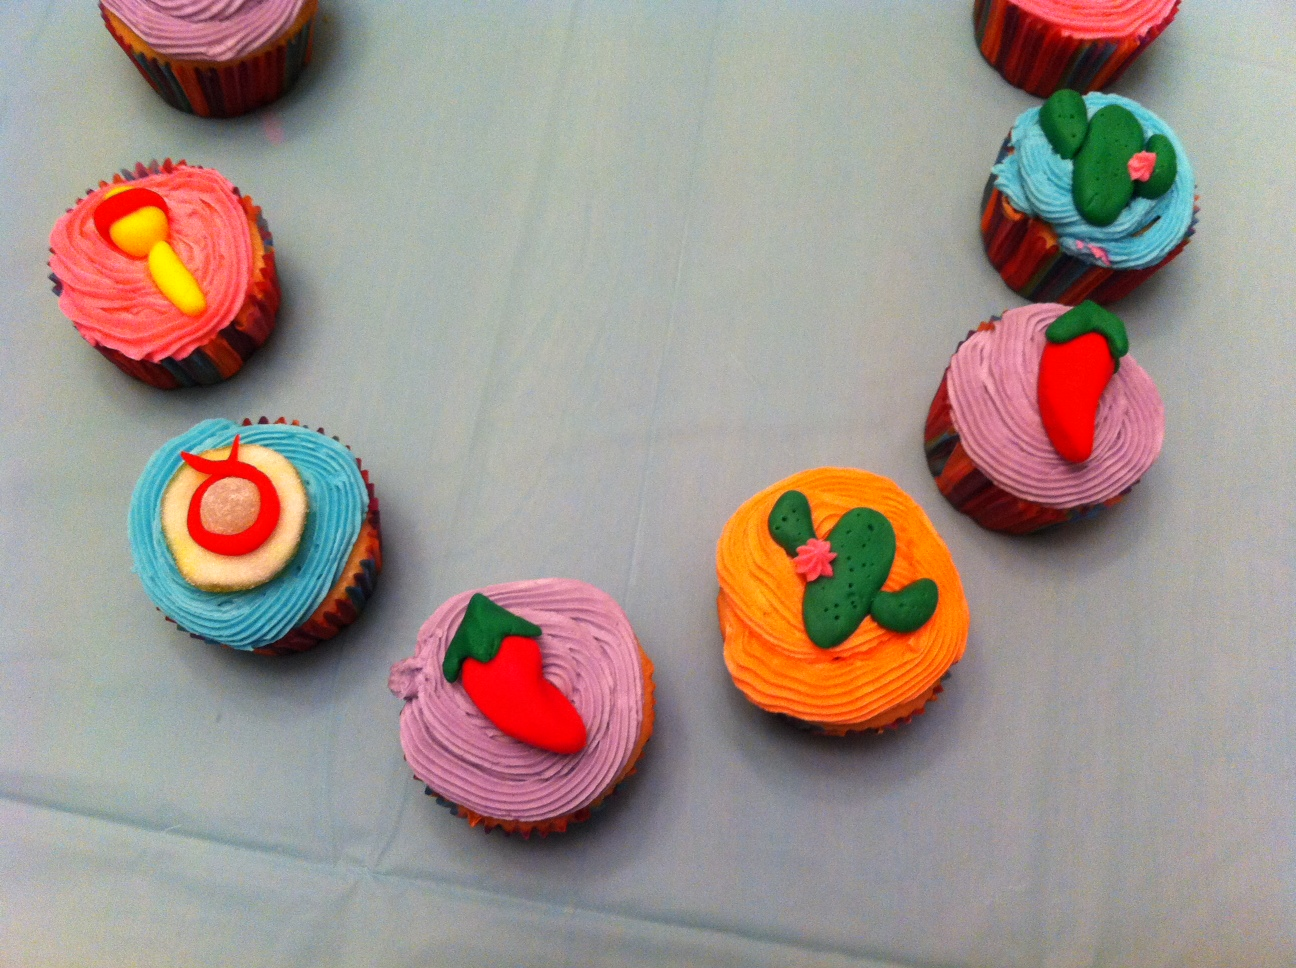 Gingerly Created Confections: 30th Birthday Fiesta Cupcakes